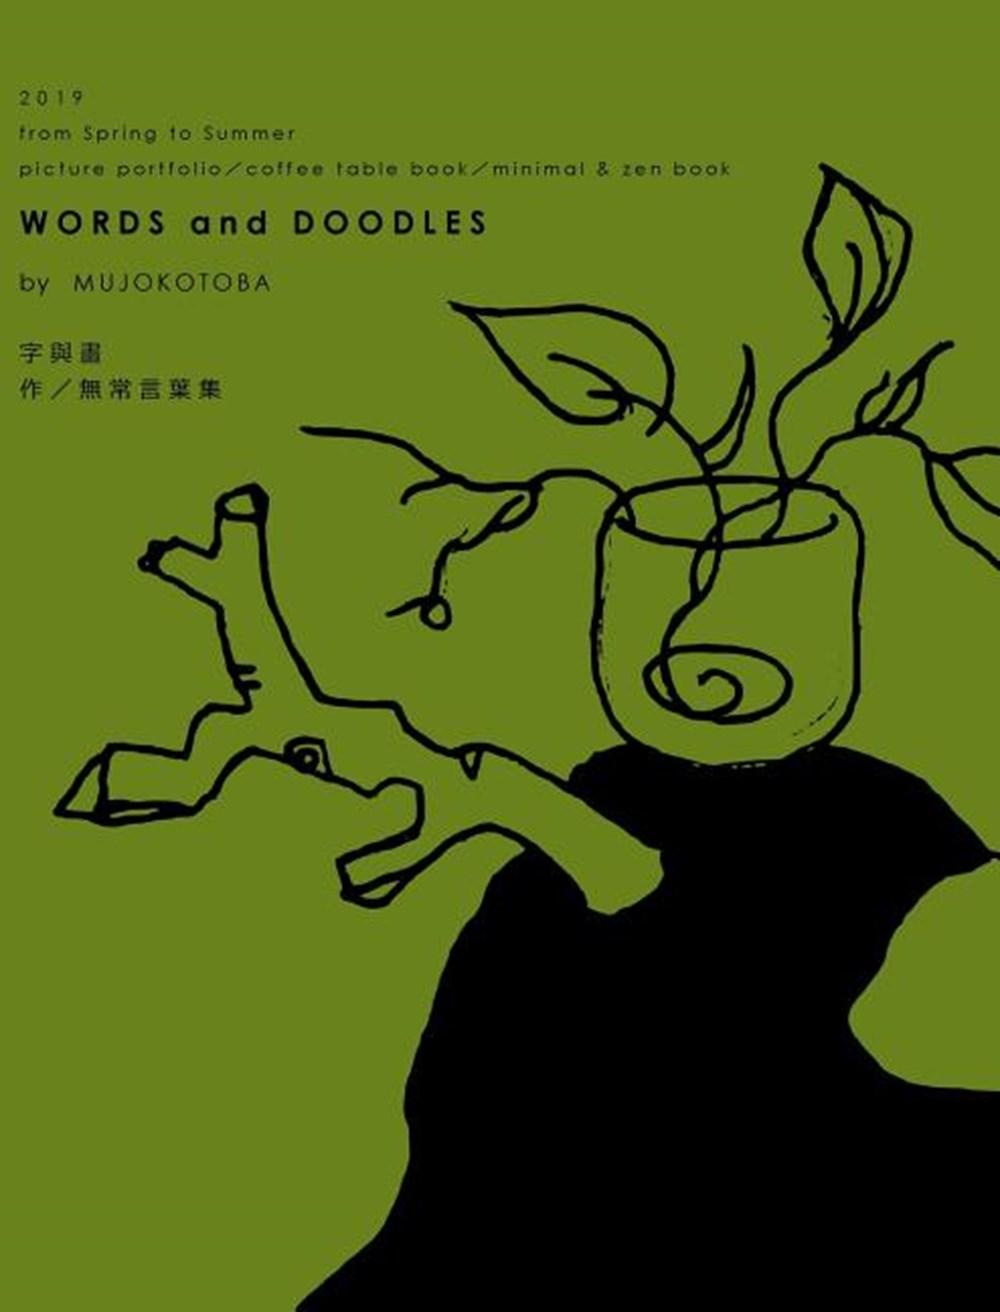 Words and Doodles (Moss Hardcover)